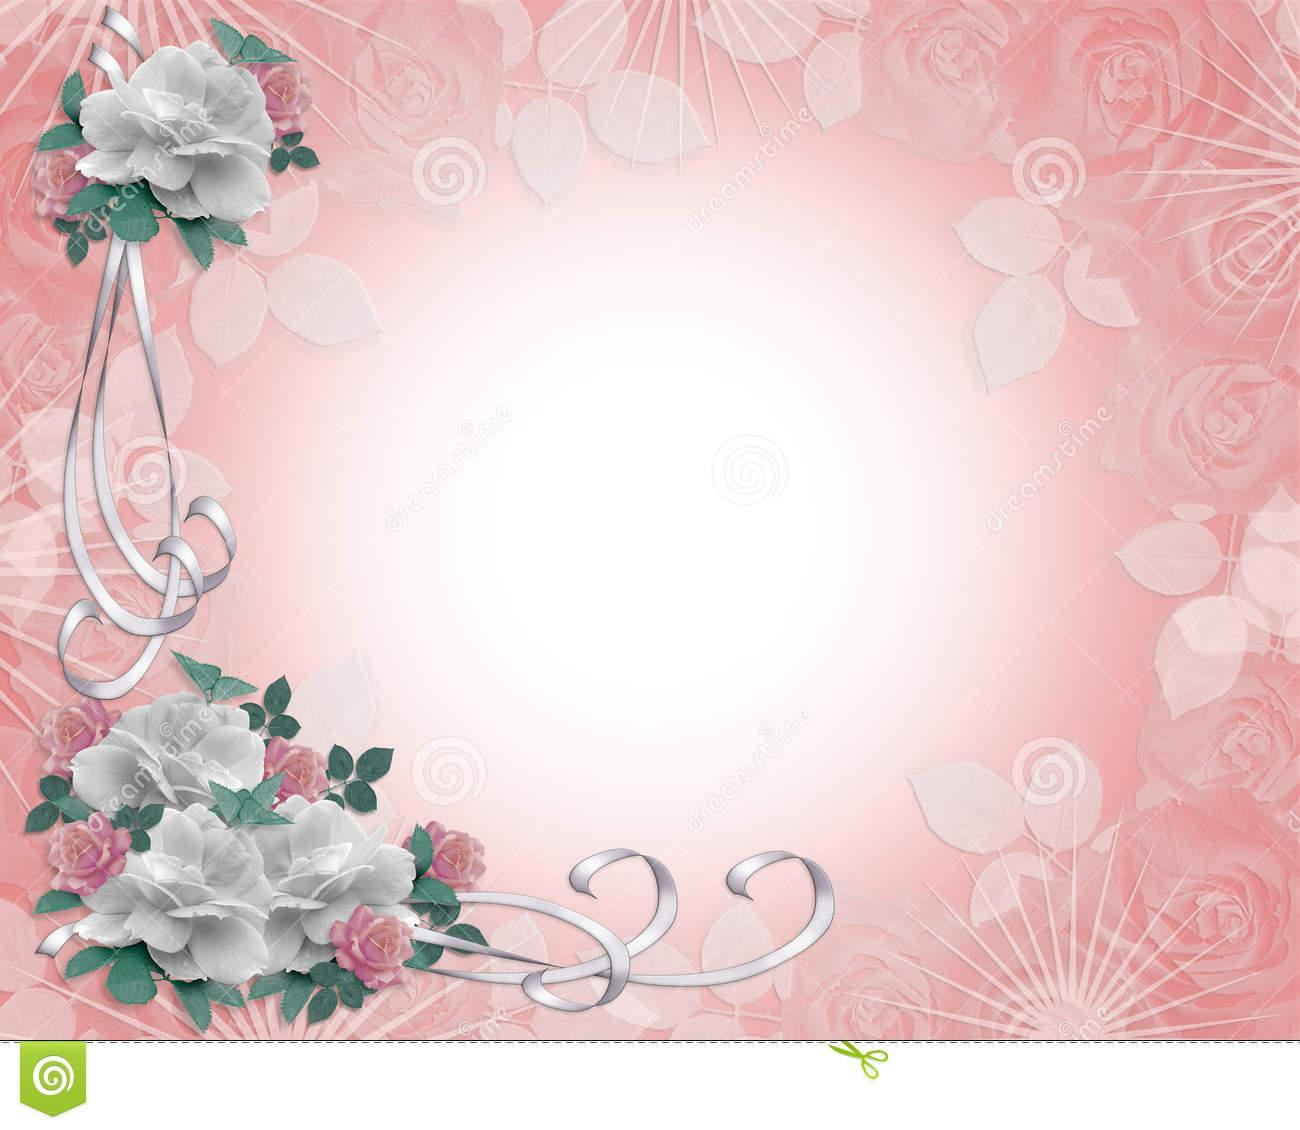 Engagement Invitations Backgrounds